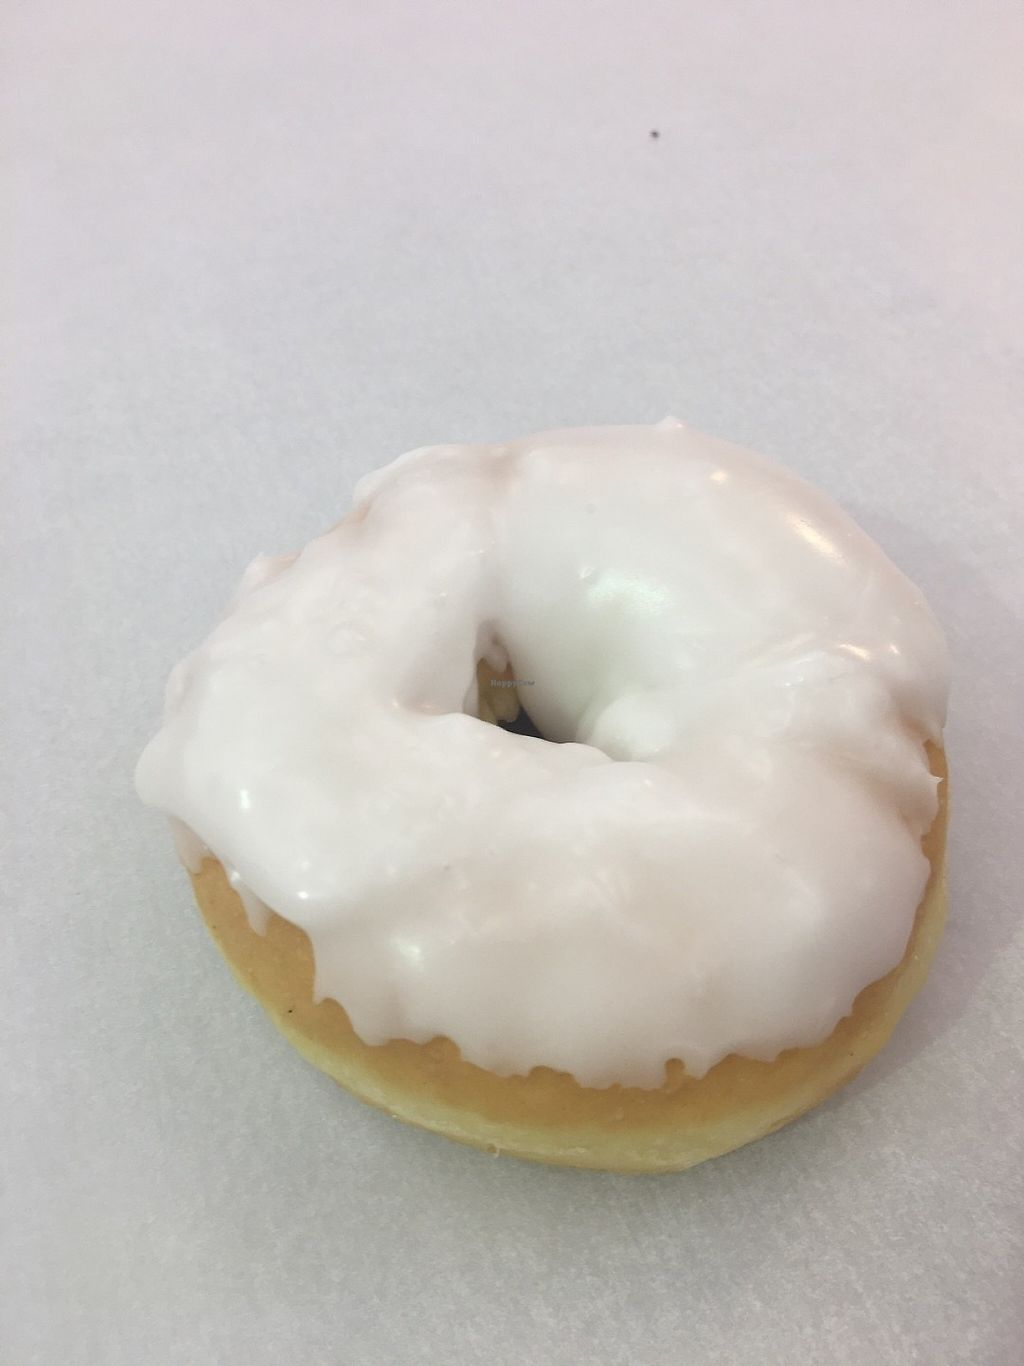 """Photo of Tasty Donuts & Coffee  by <a href=""""/members/profile/MiriamBock"""">MiriamBock</a> <br/>Classic Donut ? Delicious ?  <br/> May 17, 2017  - <a href='/contact/abuse/image/92286/259489'>Report</a>"""